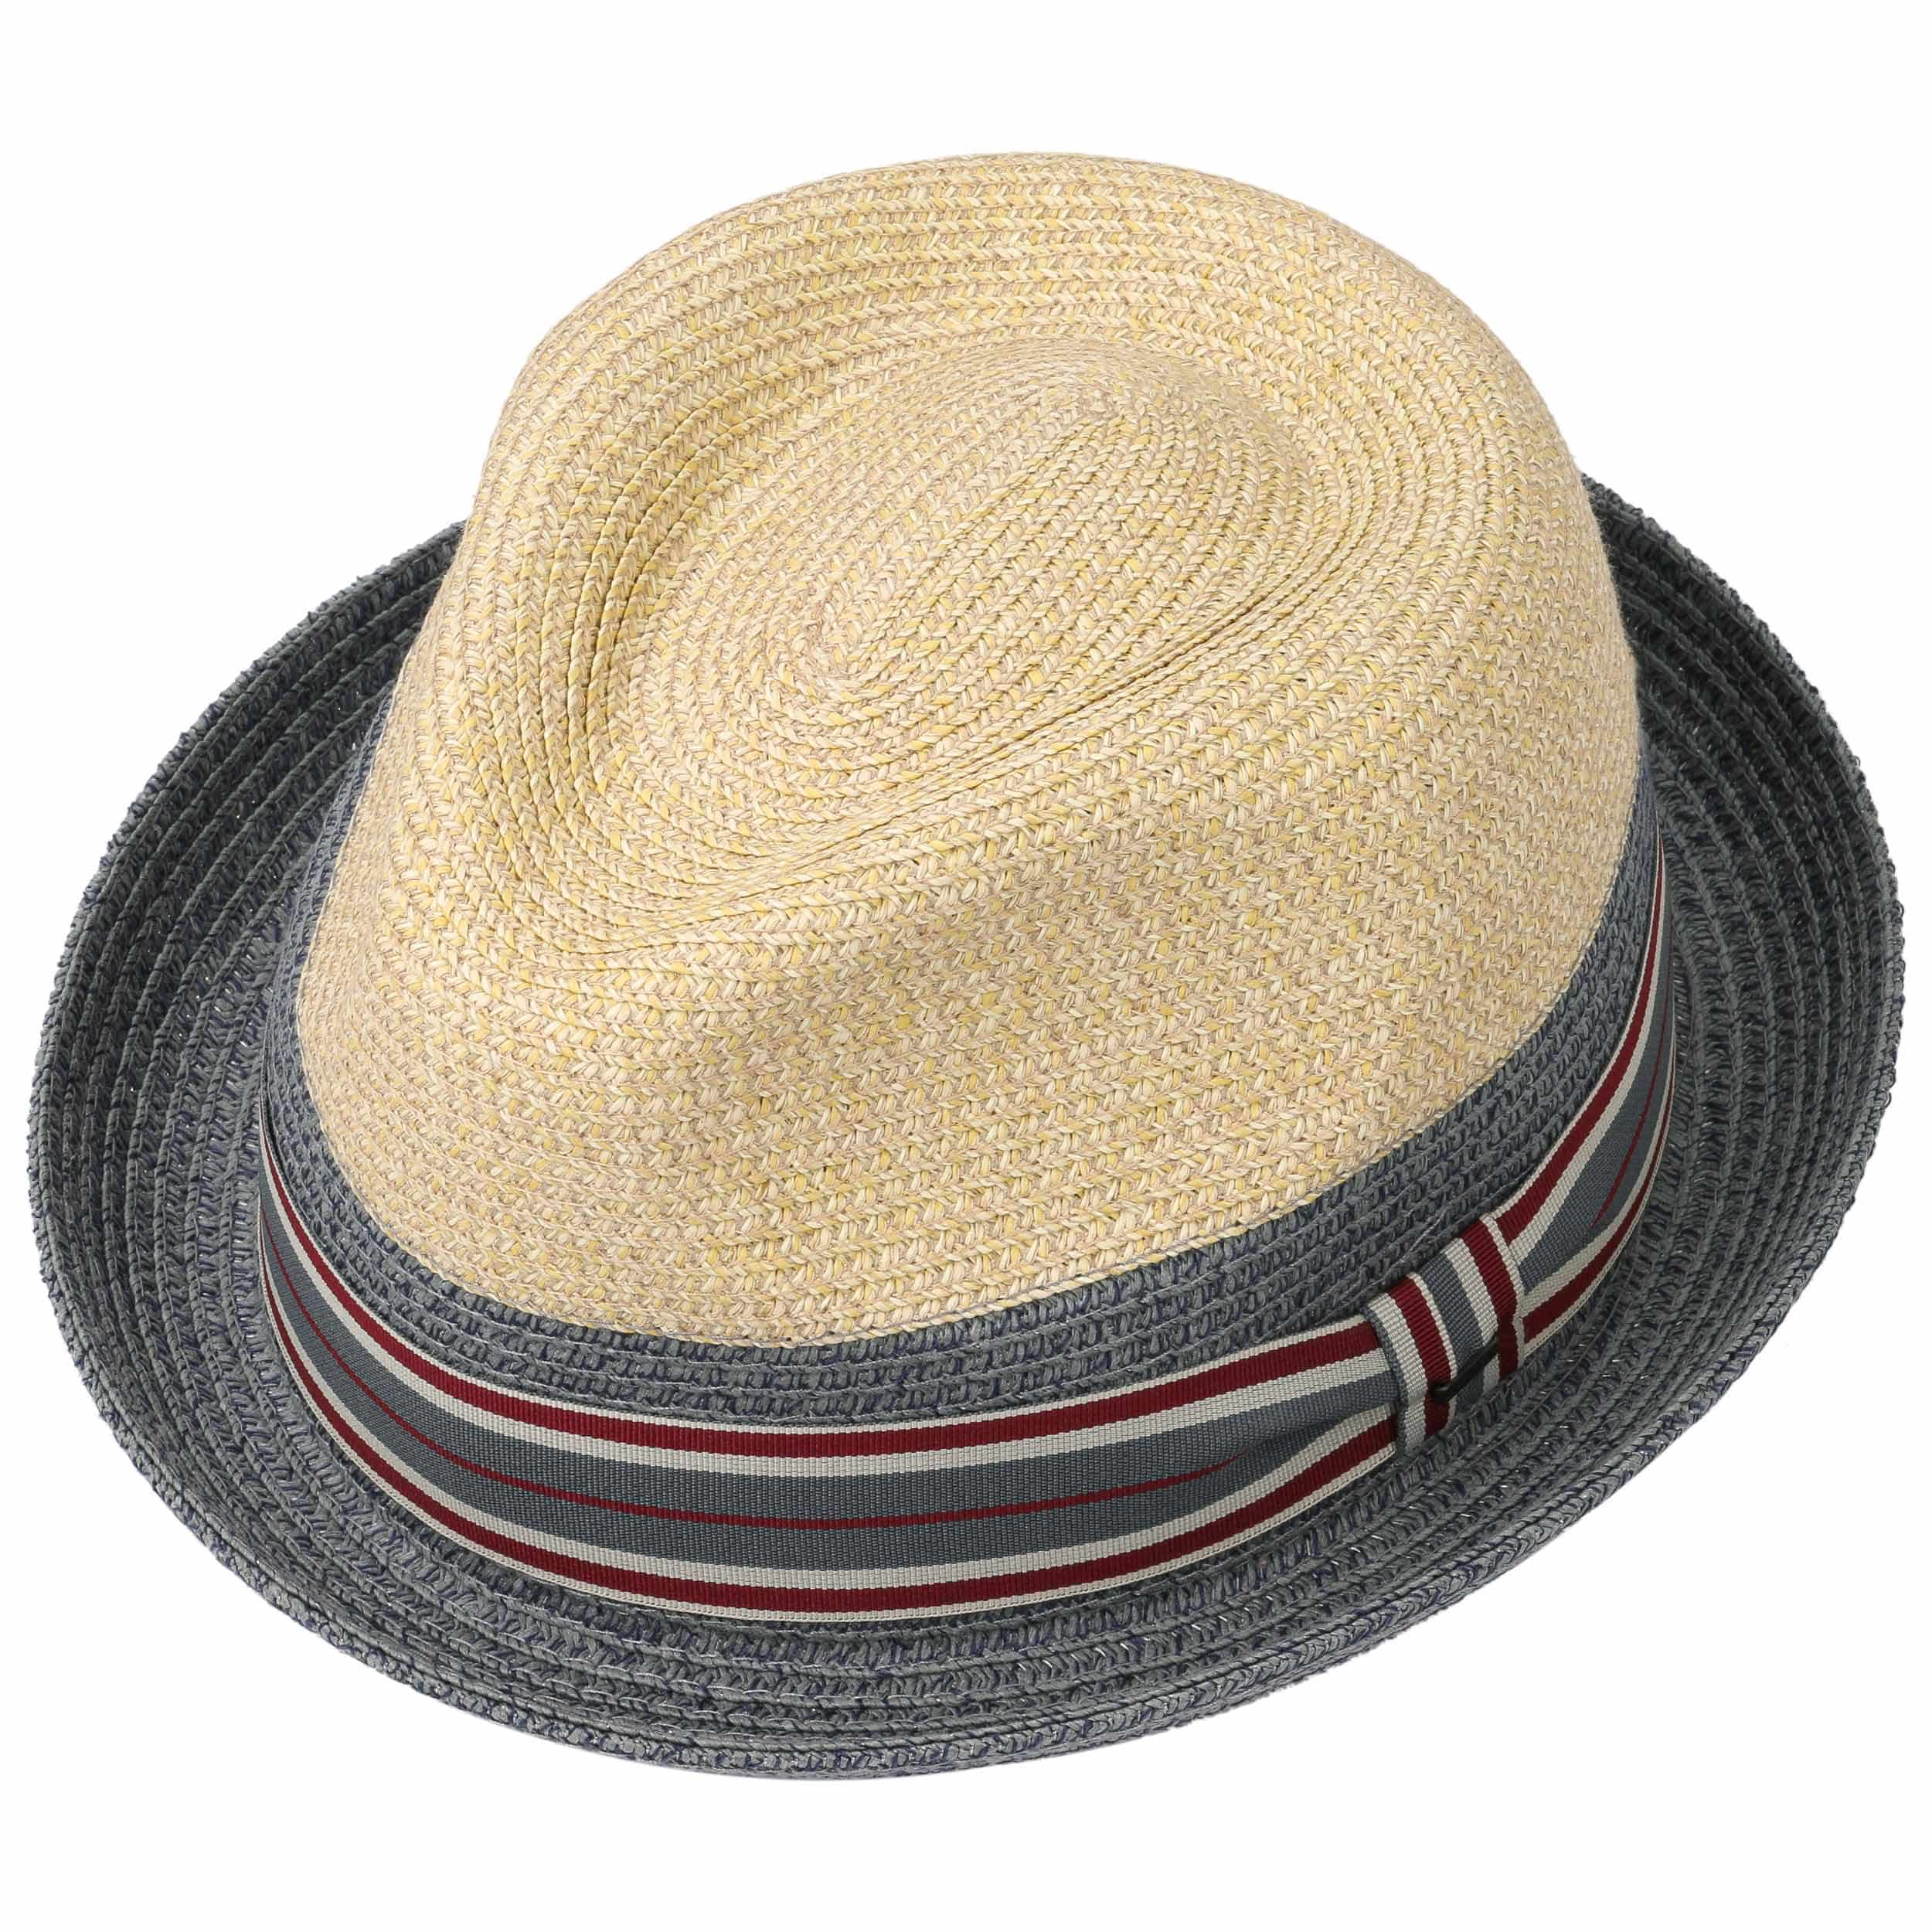 Rokit Player Summer Hat by Bailey of Hollywood - nature-blue 1 ... dcdab91e04a